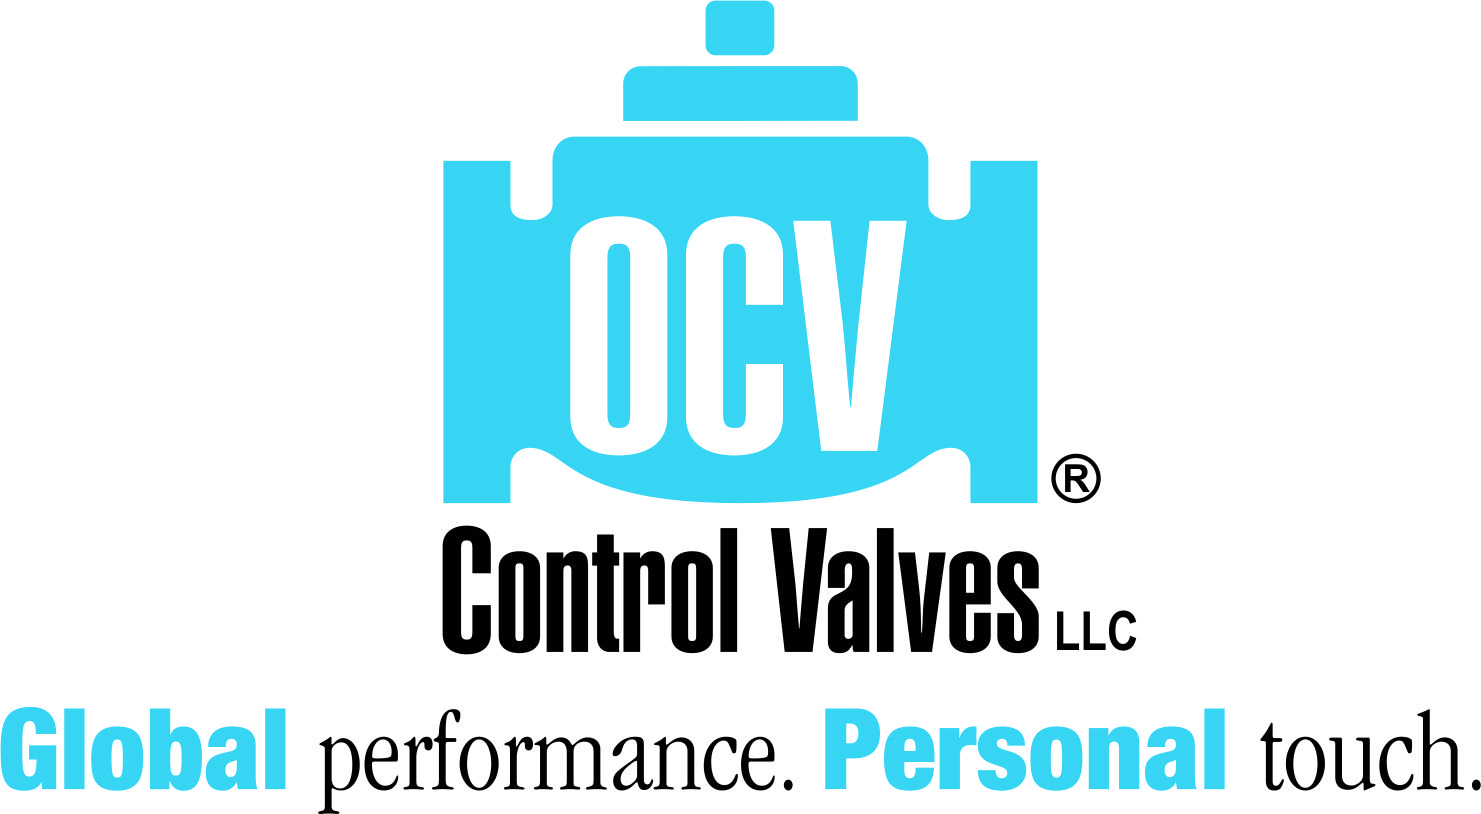 OCV Control Valves, LLC in Tulsa, OK. Control valves for fluid management in the waterworks, fire protection, mining, aviation fueling, terminal services & commercial plumbing markets.